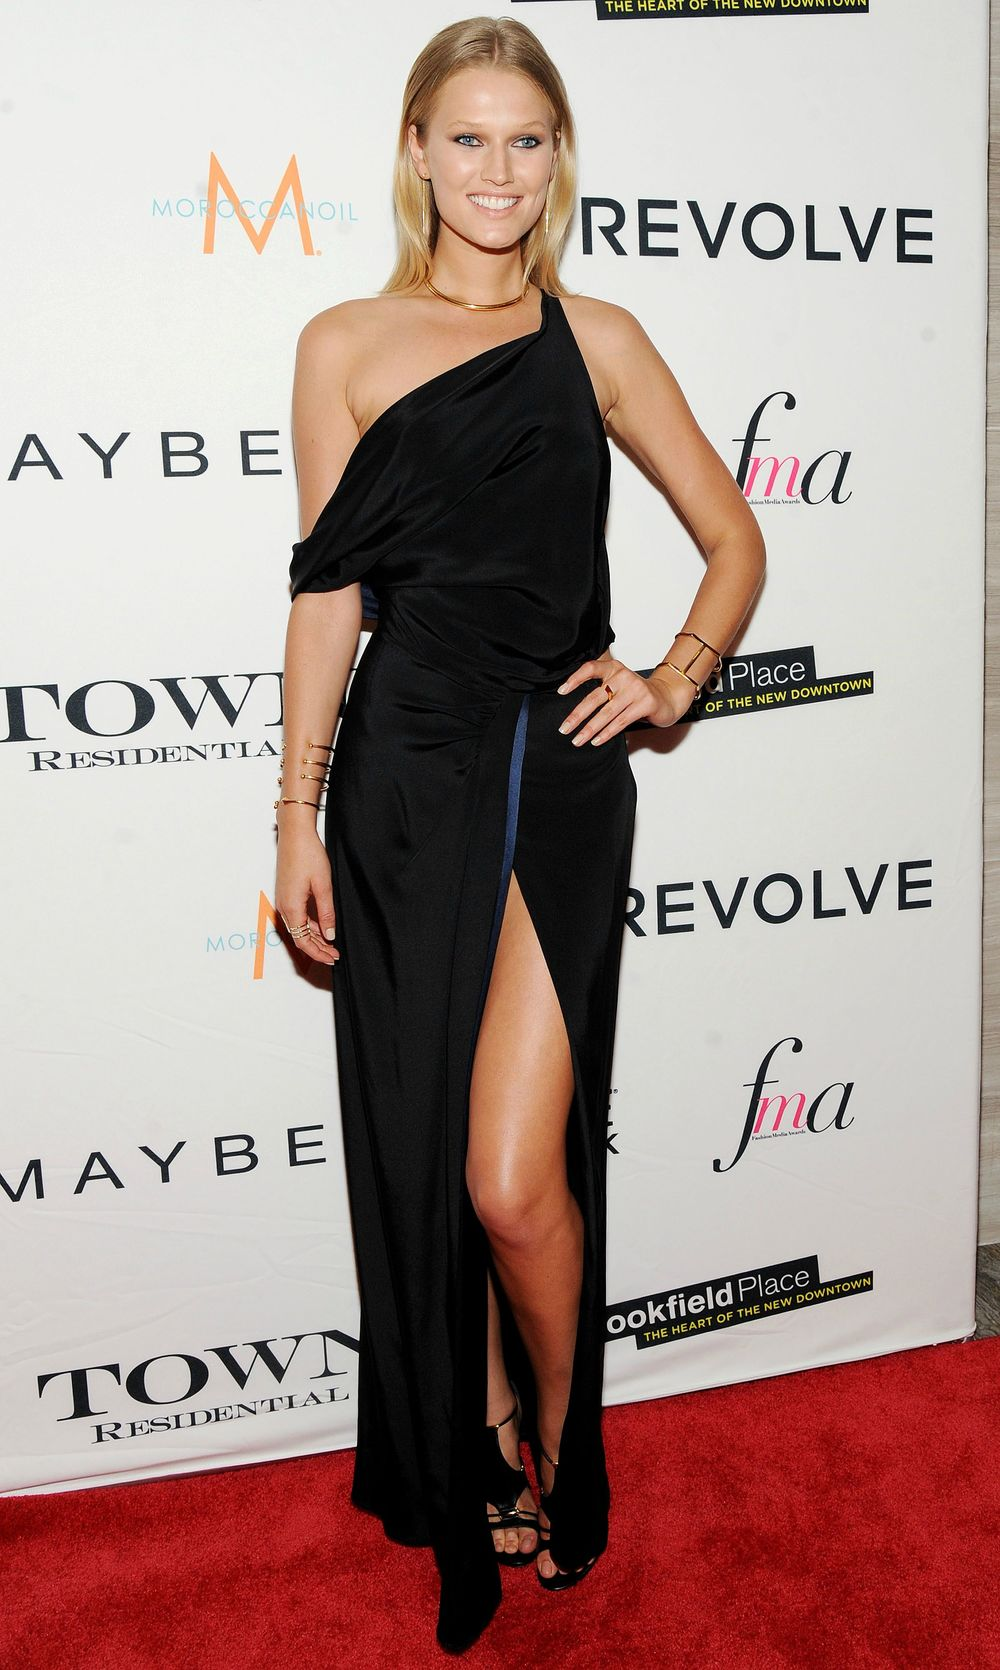 Toni garrn fashion media awards 2015 wearing sophie theallet.jpg